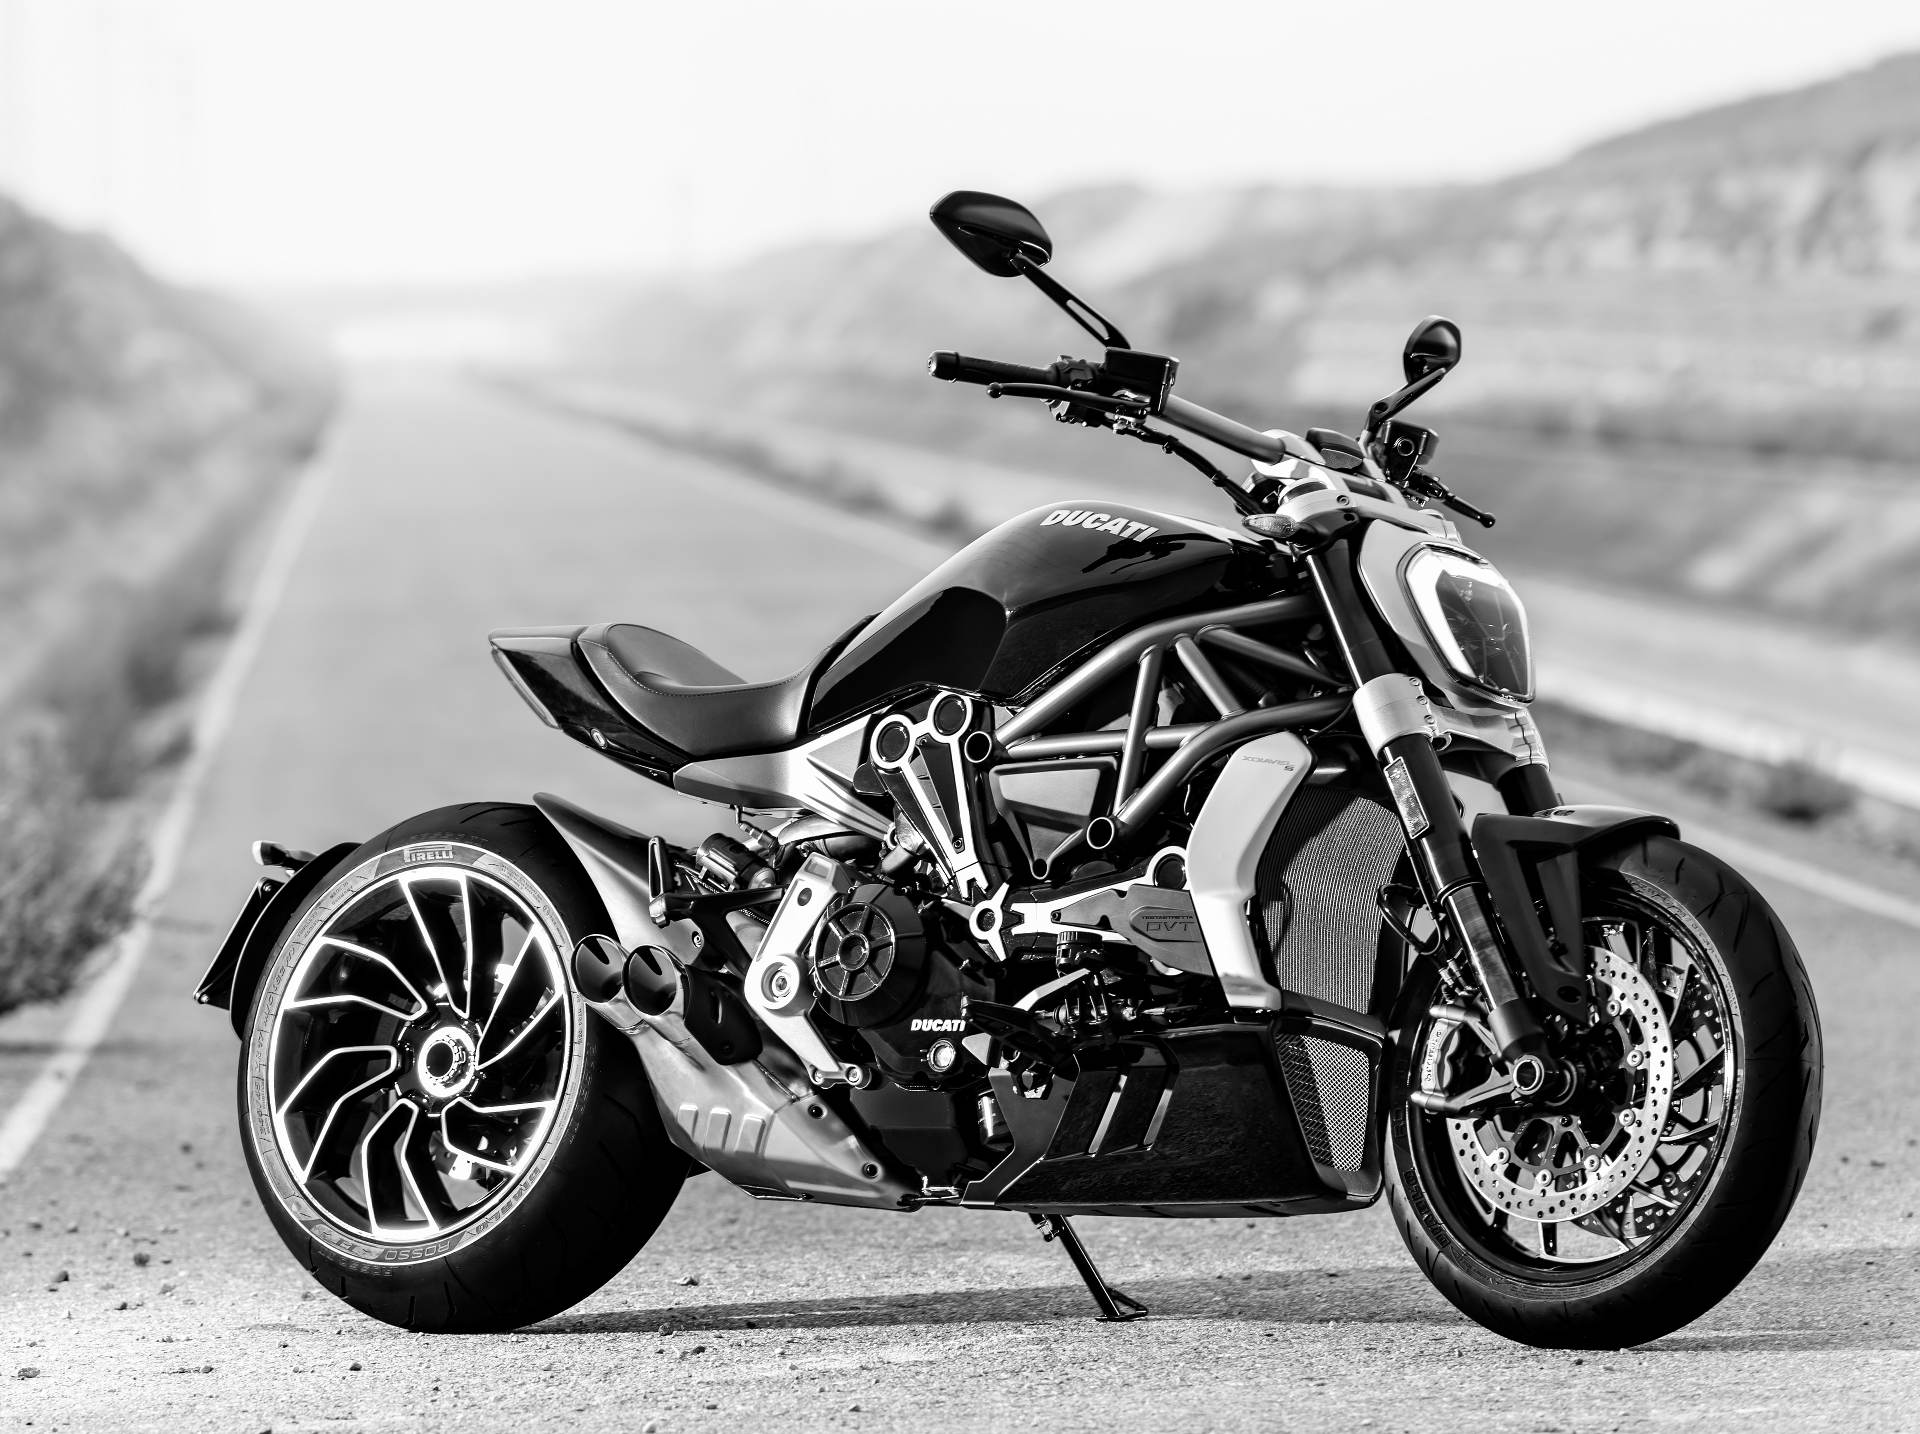 Ducati Announces New XDiavel: Entering the Cruiser Category With 156 ...